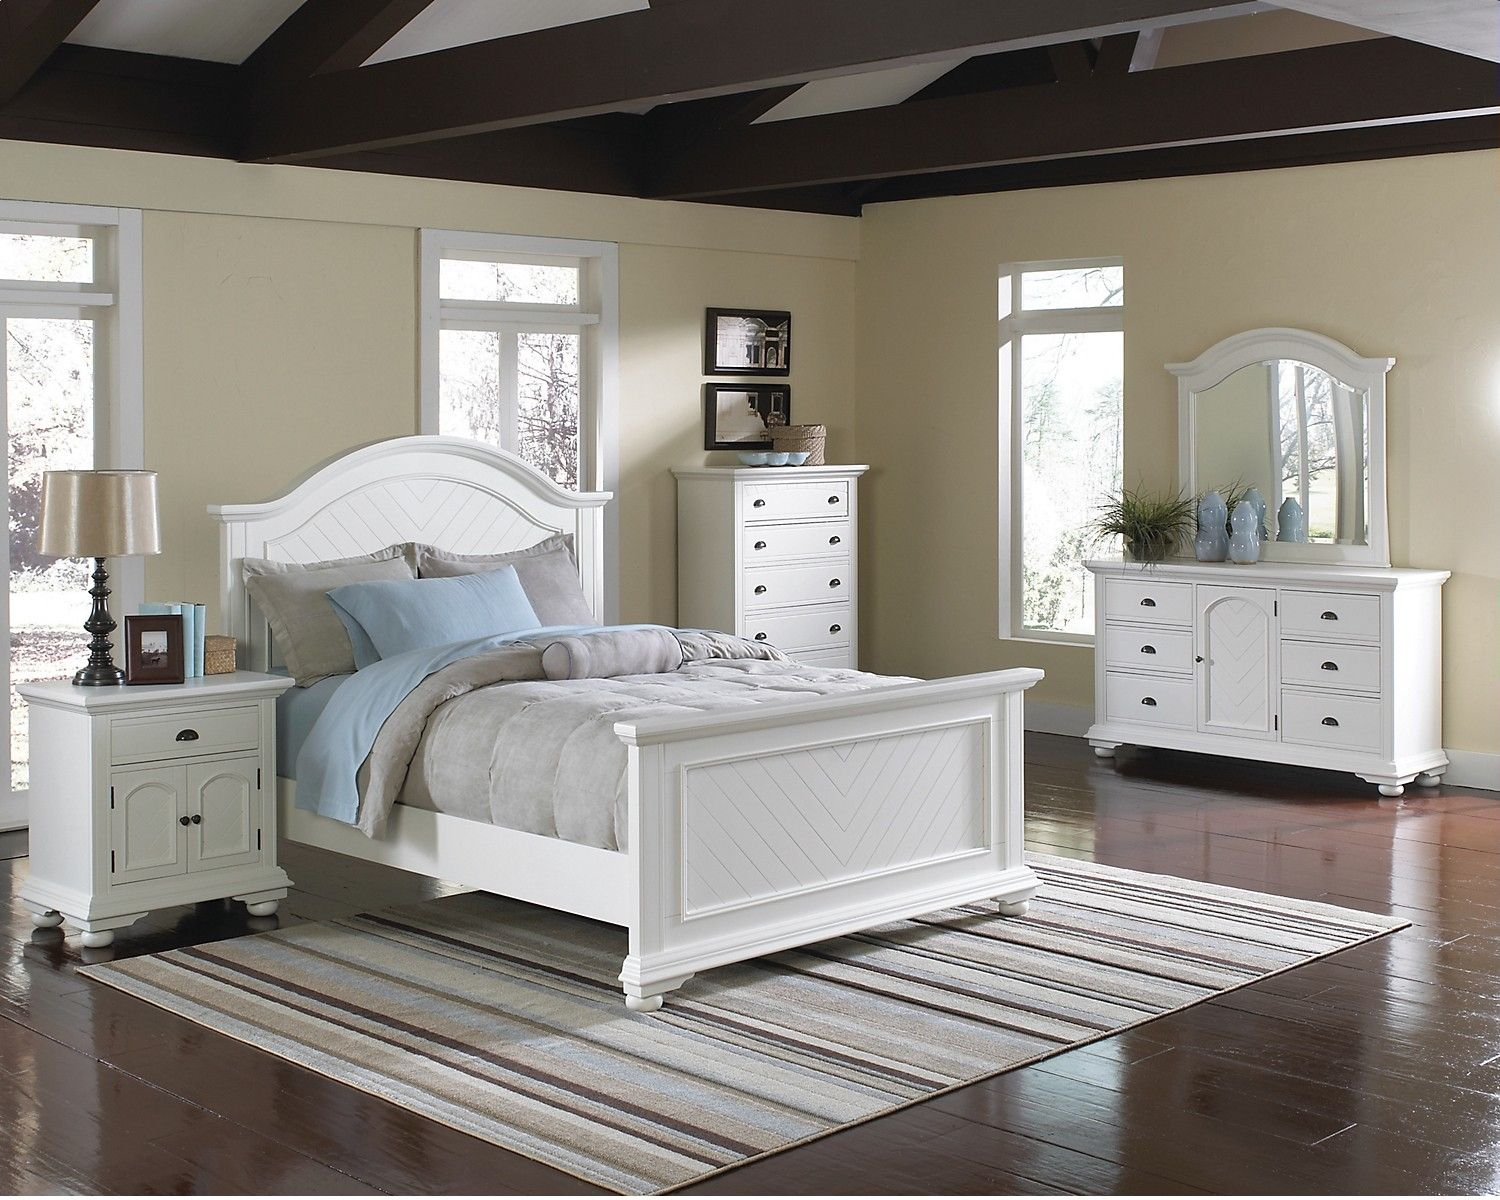 Brook Off-White 6-Piece Queen Bedroom Package | Queen bedroom ... on off white bedroom storage, off white mirrors, off white dressers, off white rugs, off white recliners, off white bedroom decorating ideas, off white dinette sets, off white sofa sets, off white beds, off white quilts, off white books, off white walls, off white bedroom vanity, off white bedroom suite, off white comforters, off white art, off white dining room, off white living room, off white furniture, off white buffets,